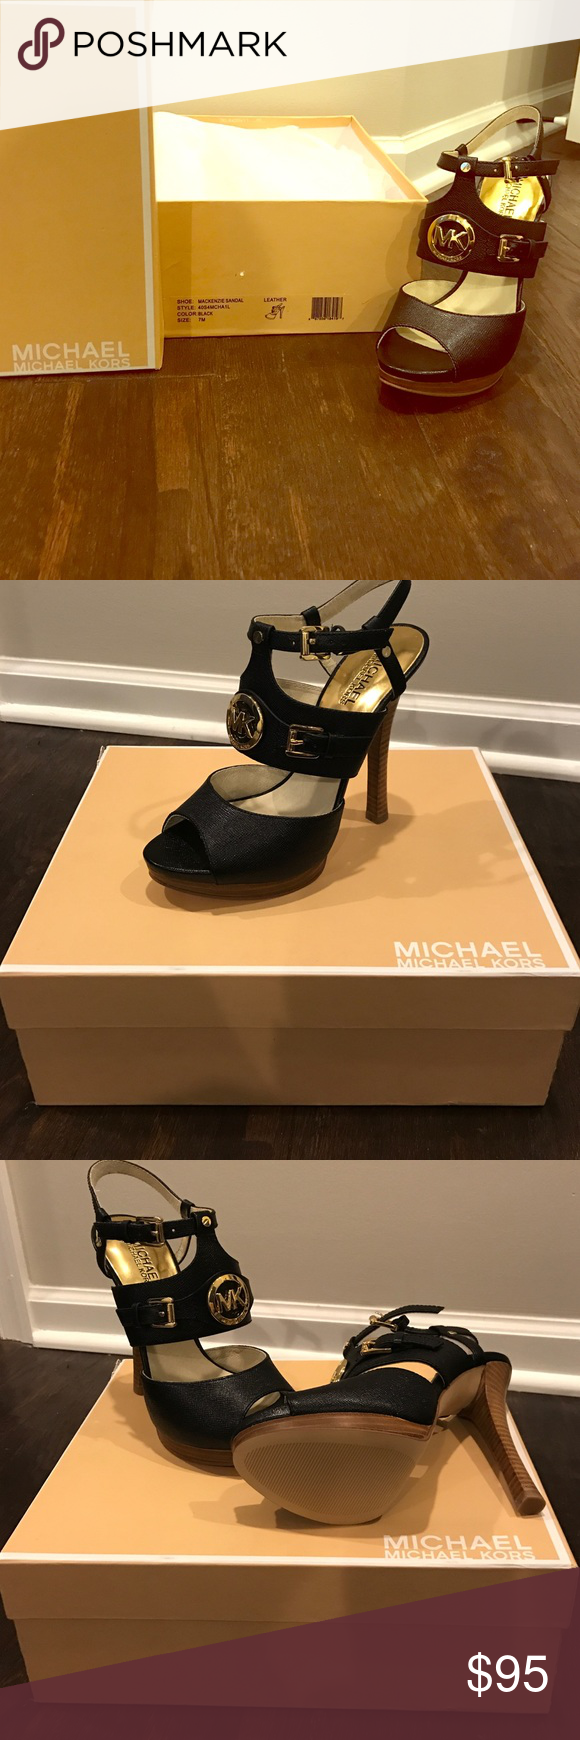 Michael Kors Mackenzie Sandal - size 7 Never worn - New in box!  Amazing 4.5 inch heel. Perfect for any occasion Michael Kors Shoes Heels